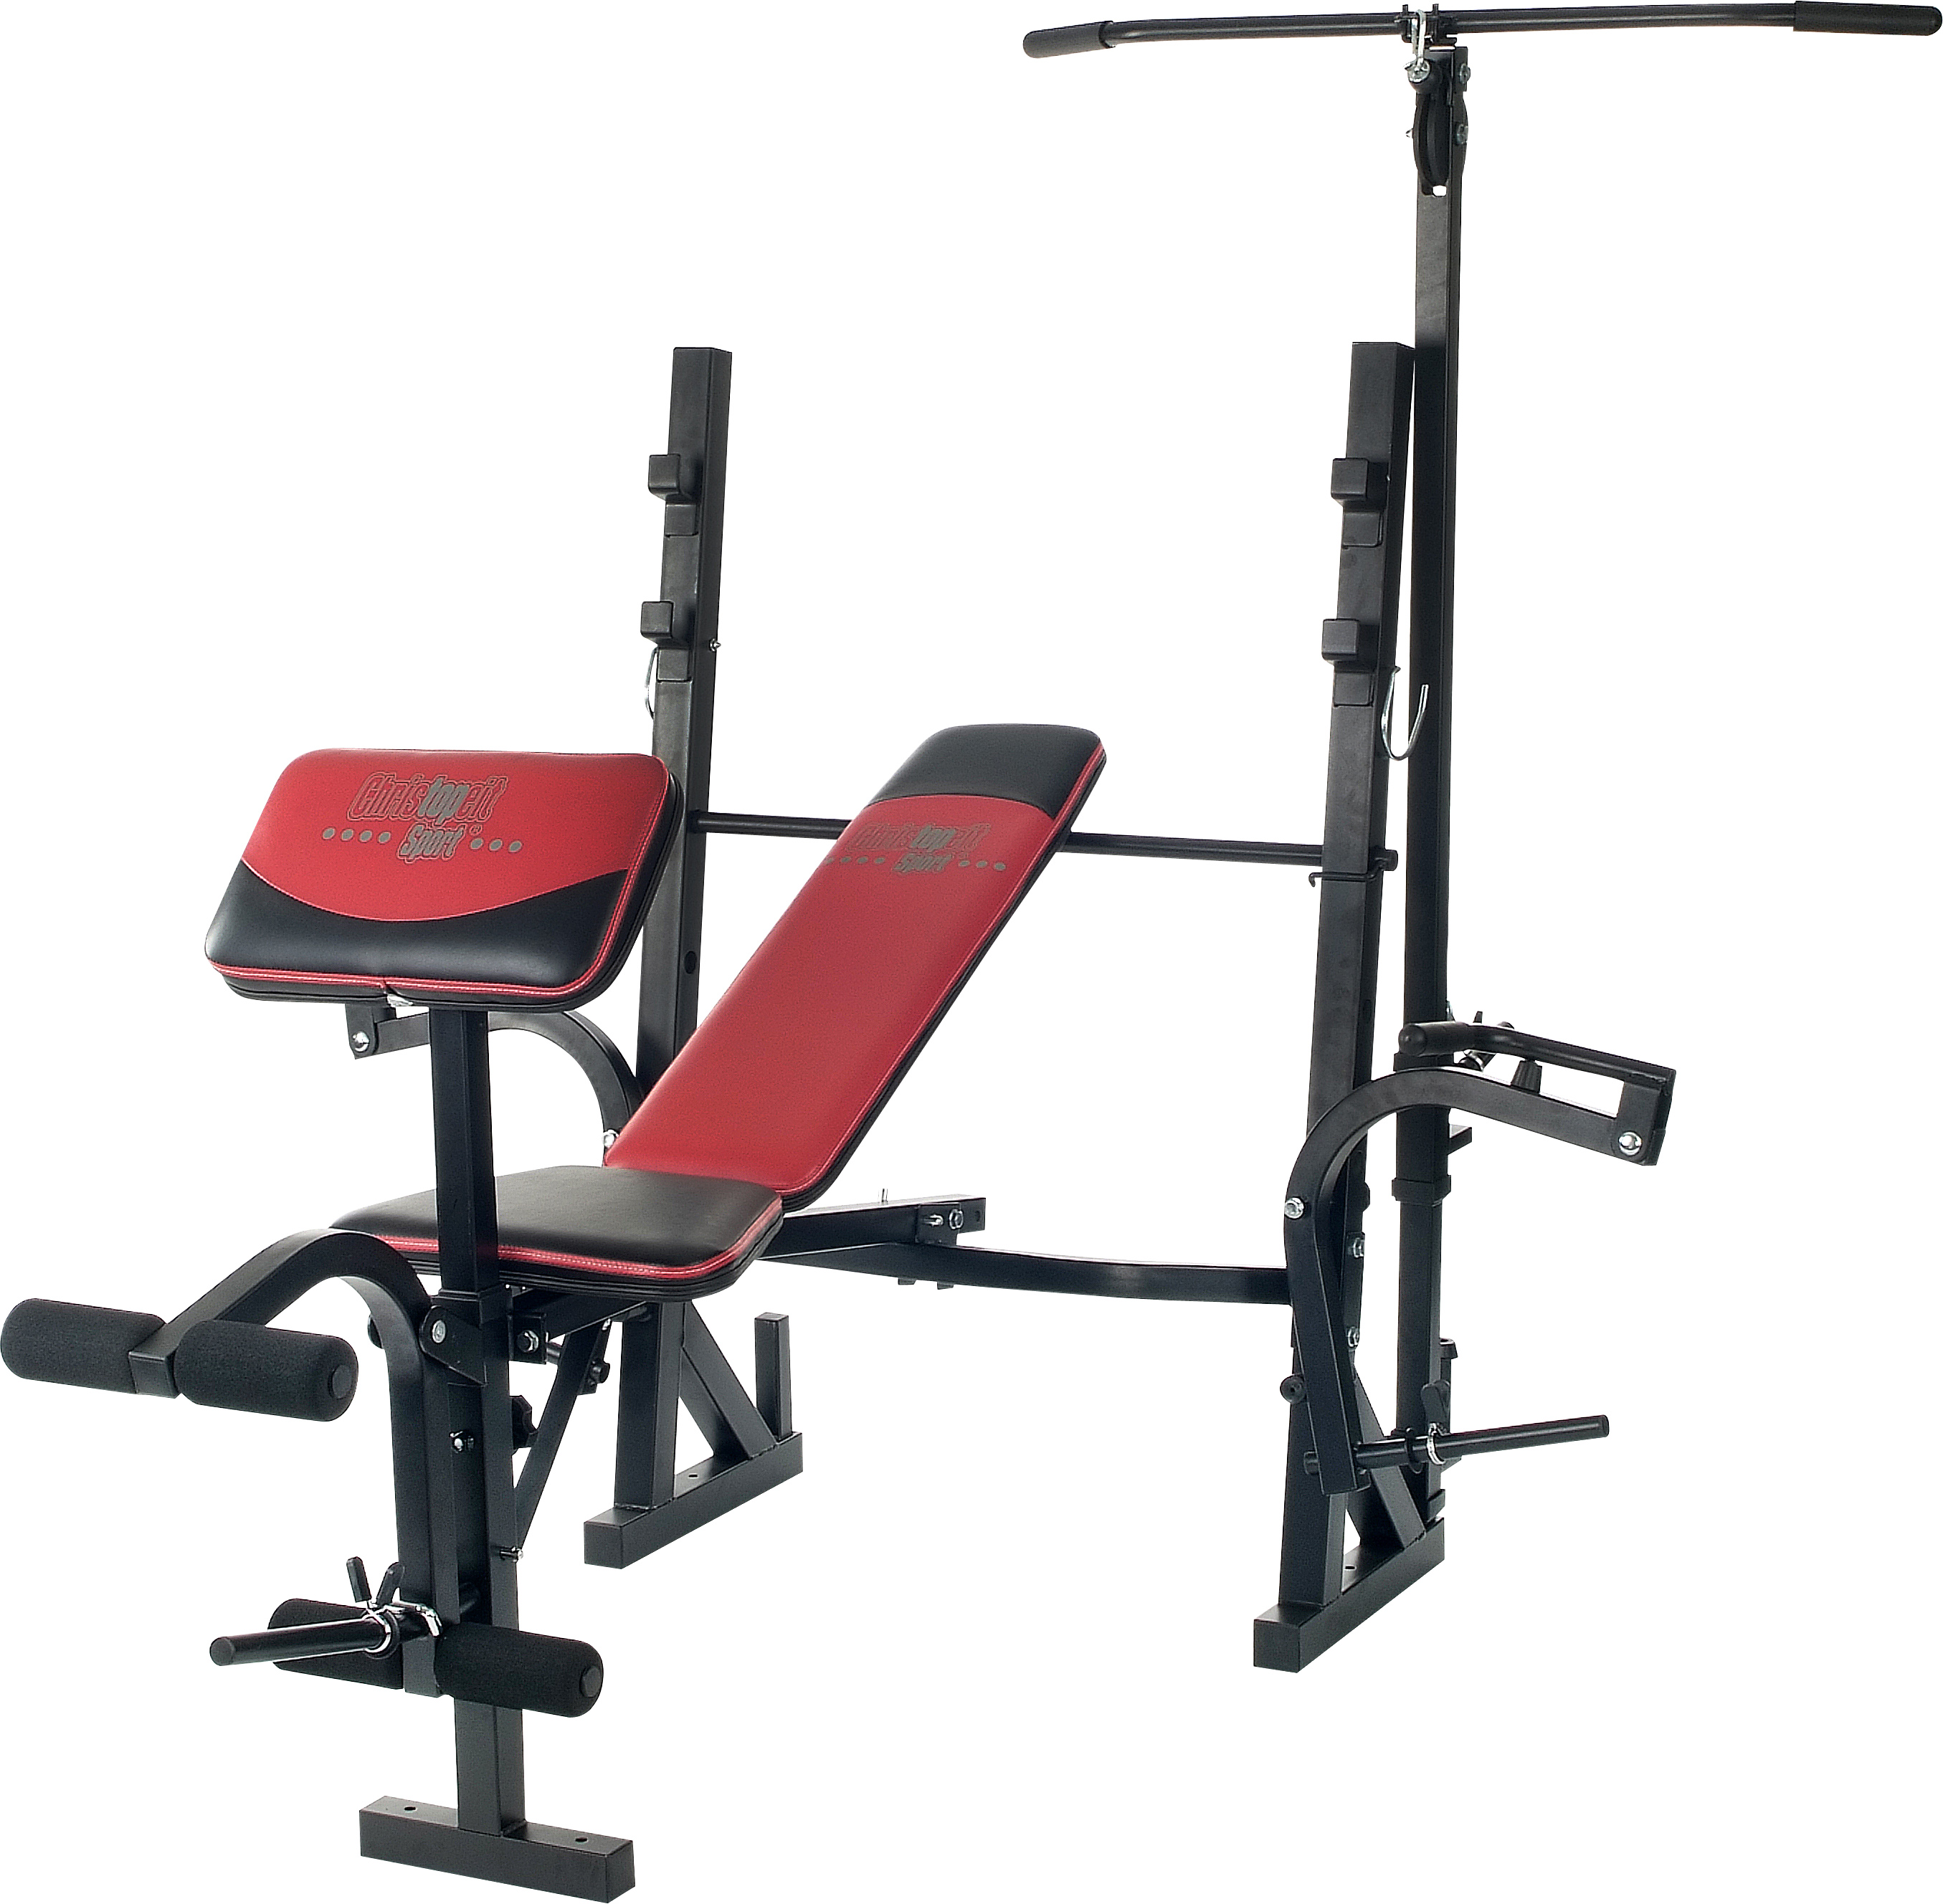 Christopeit Fitness Station Basic Concept De Luxe